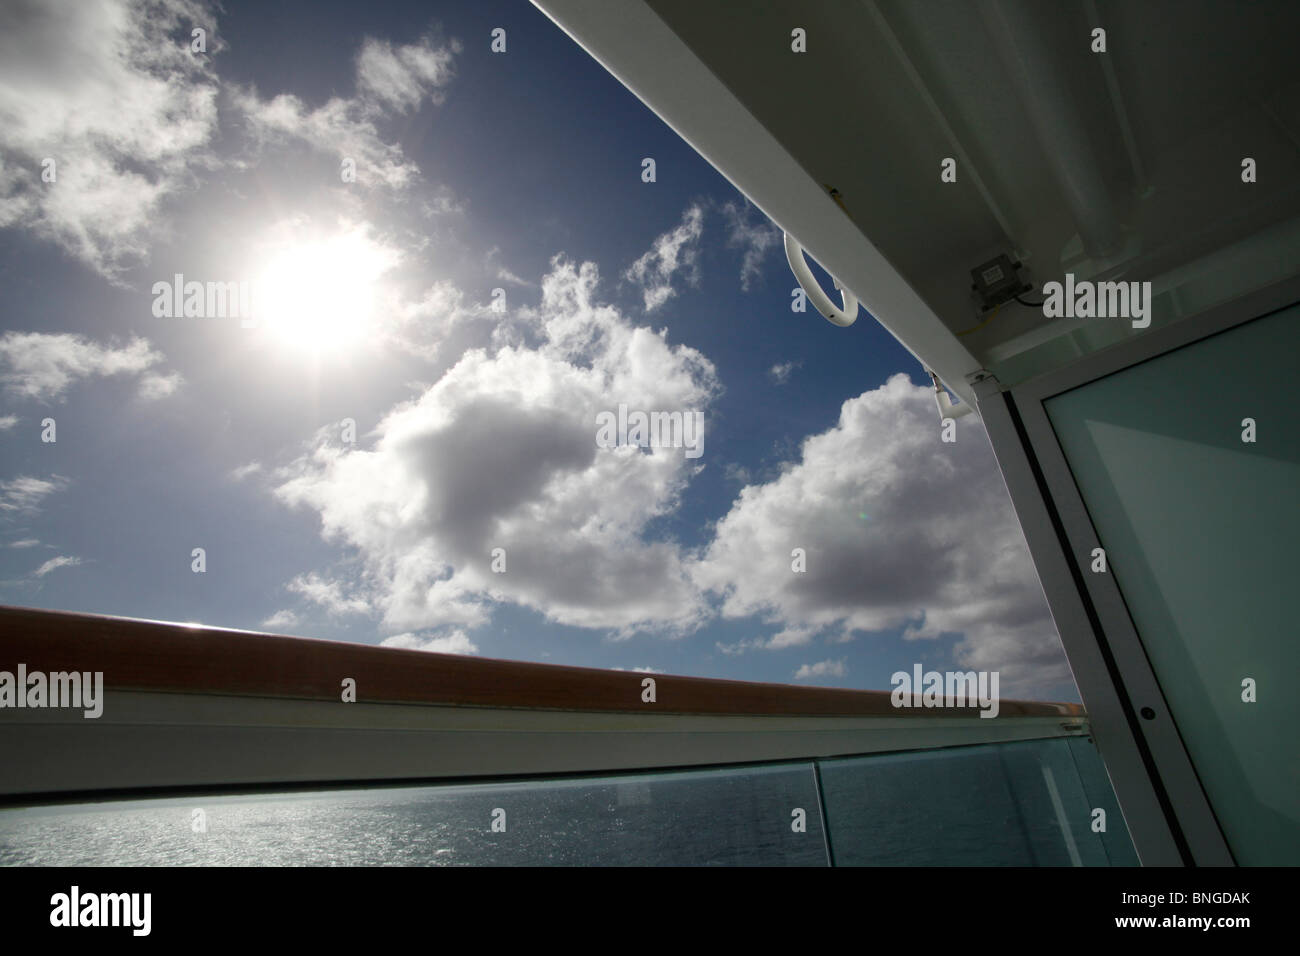 view from balcony of cruise ship looking at sky with sun shinning through clouds - Stock Image